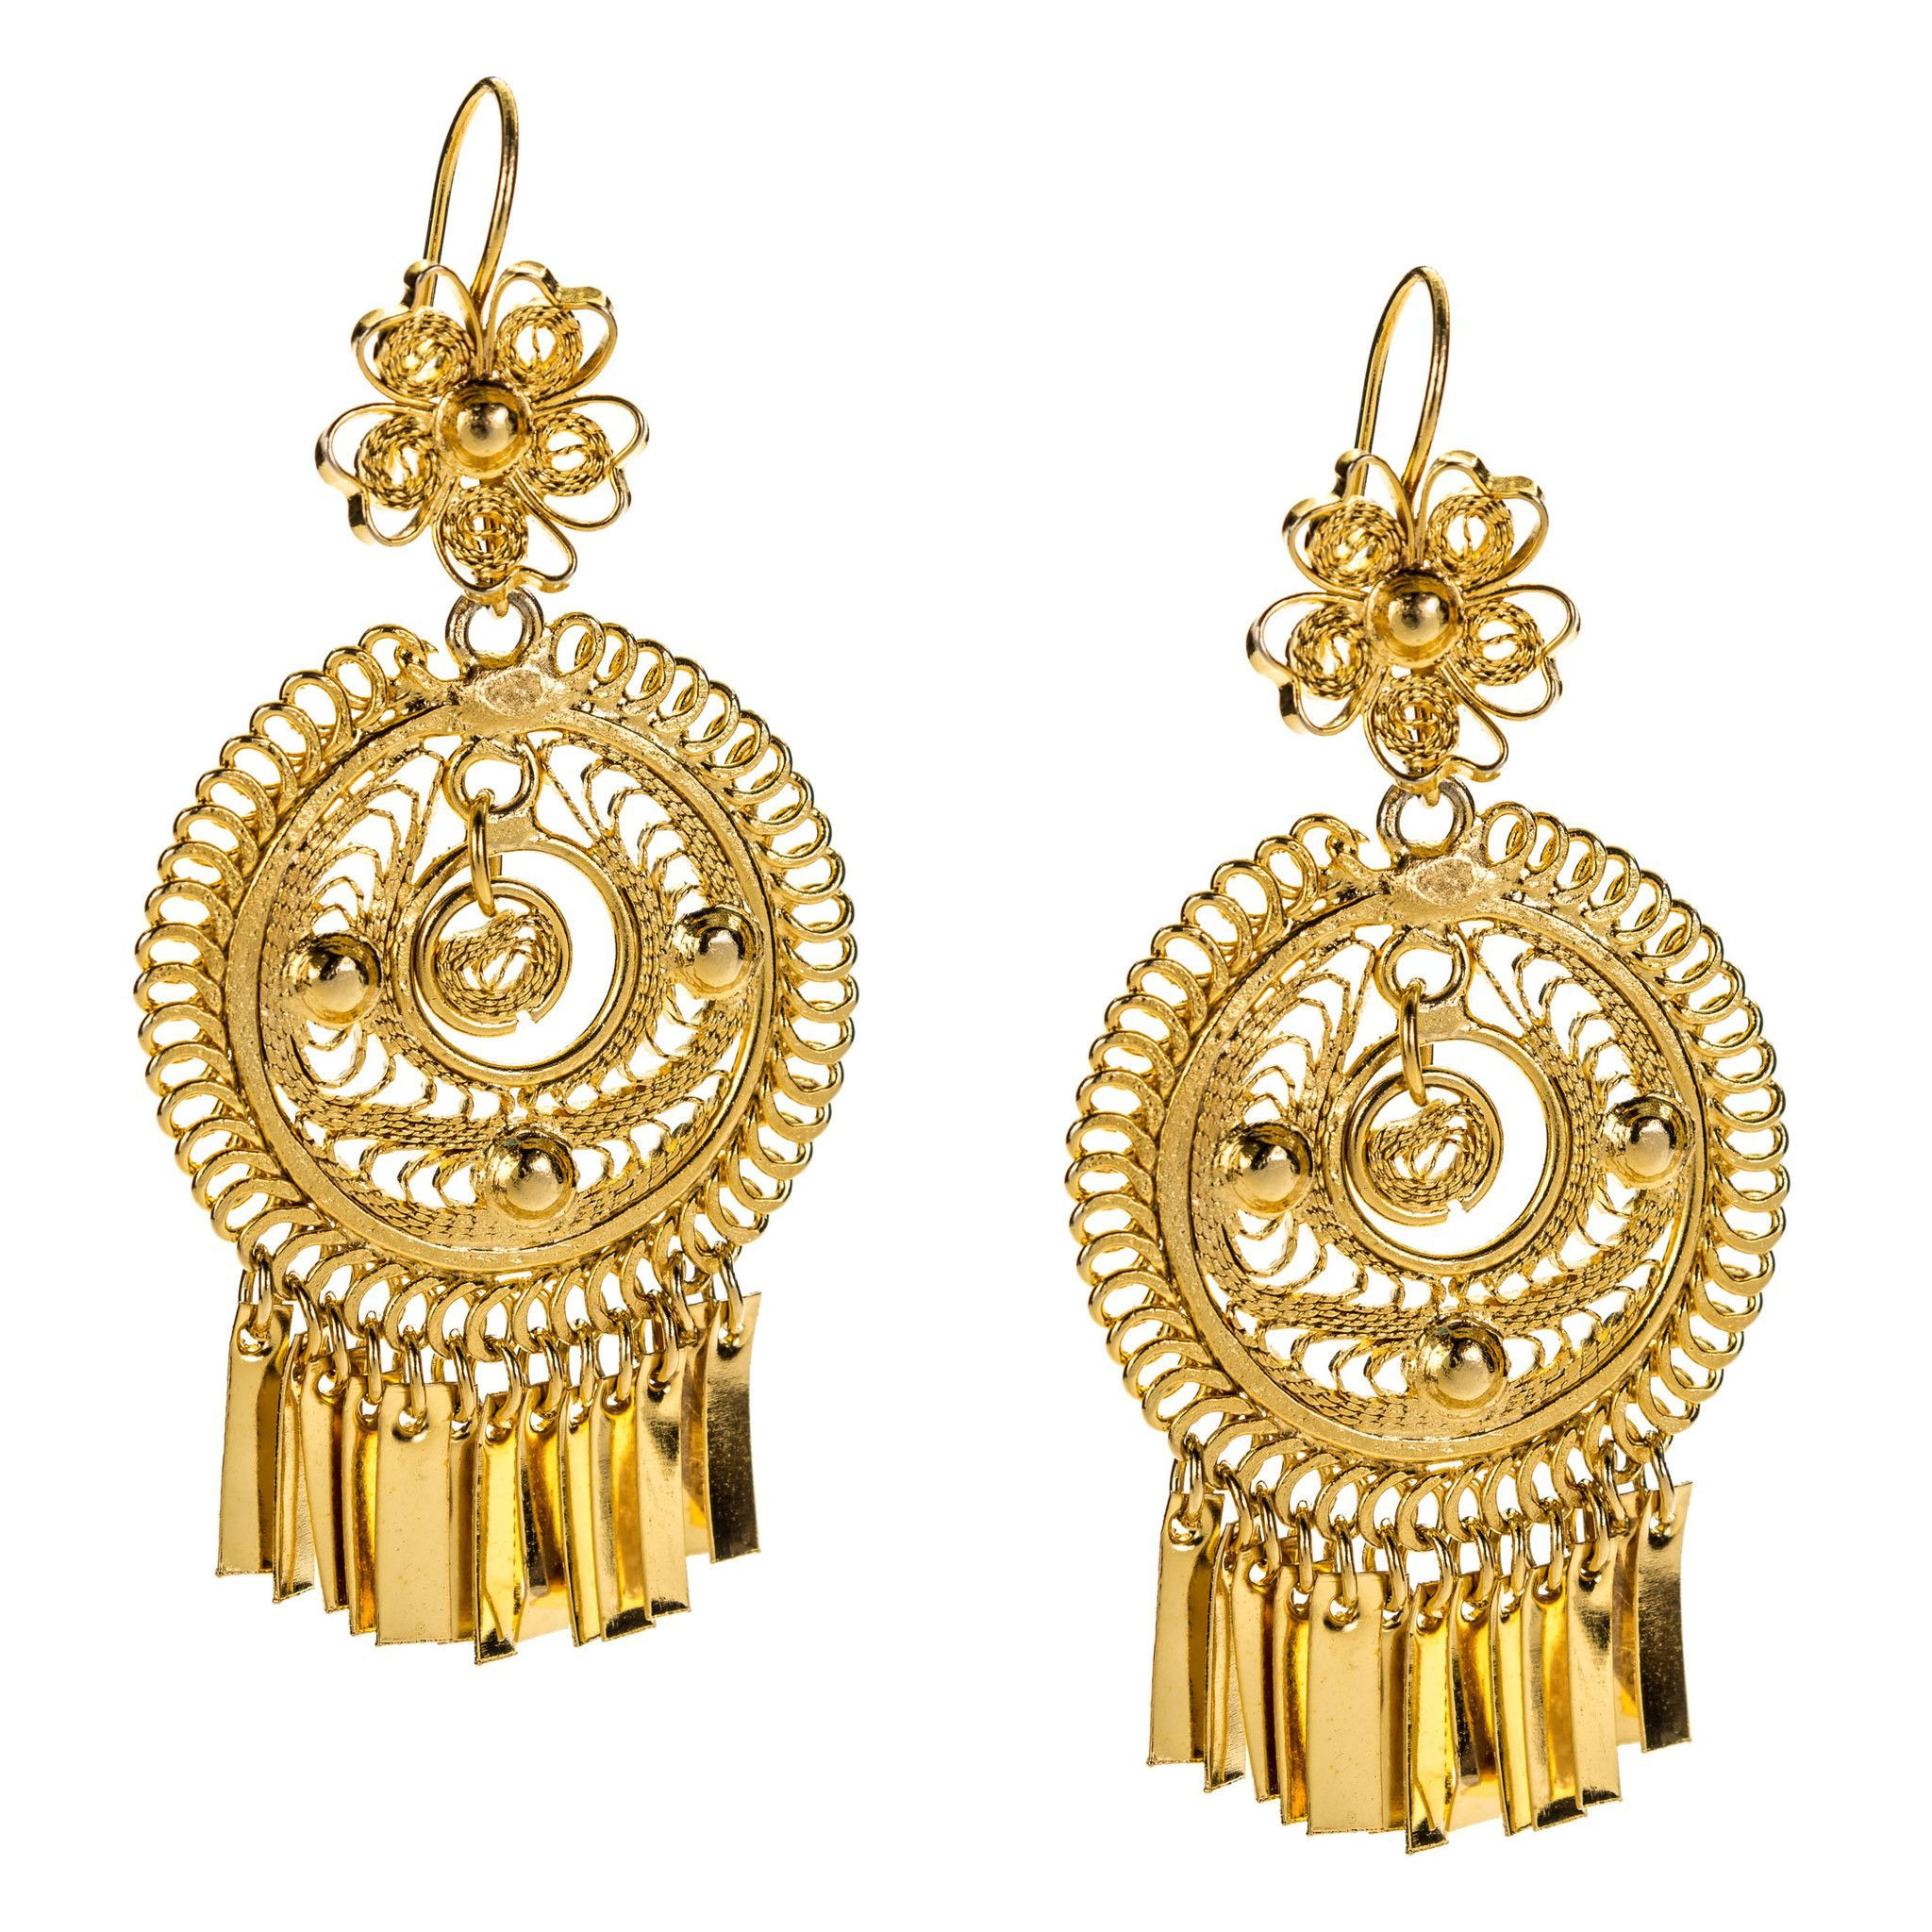 bf3f739cf228 Mexican Filigree Earrings from Oaxaca Trajes Tipicos Mexicanos